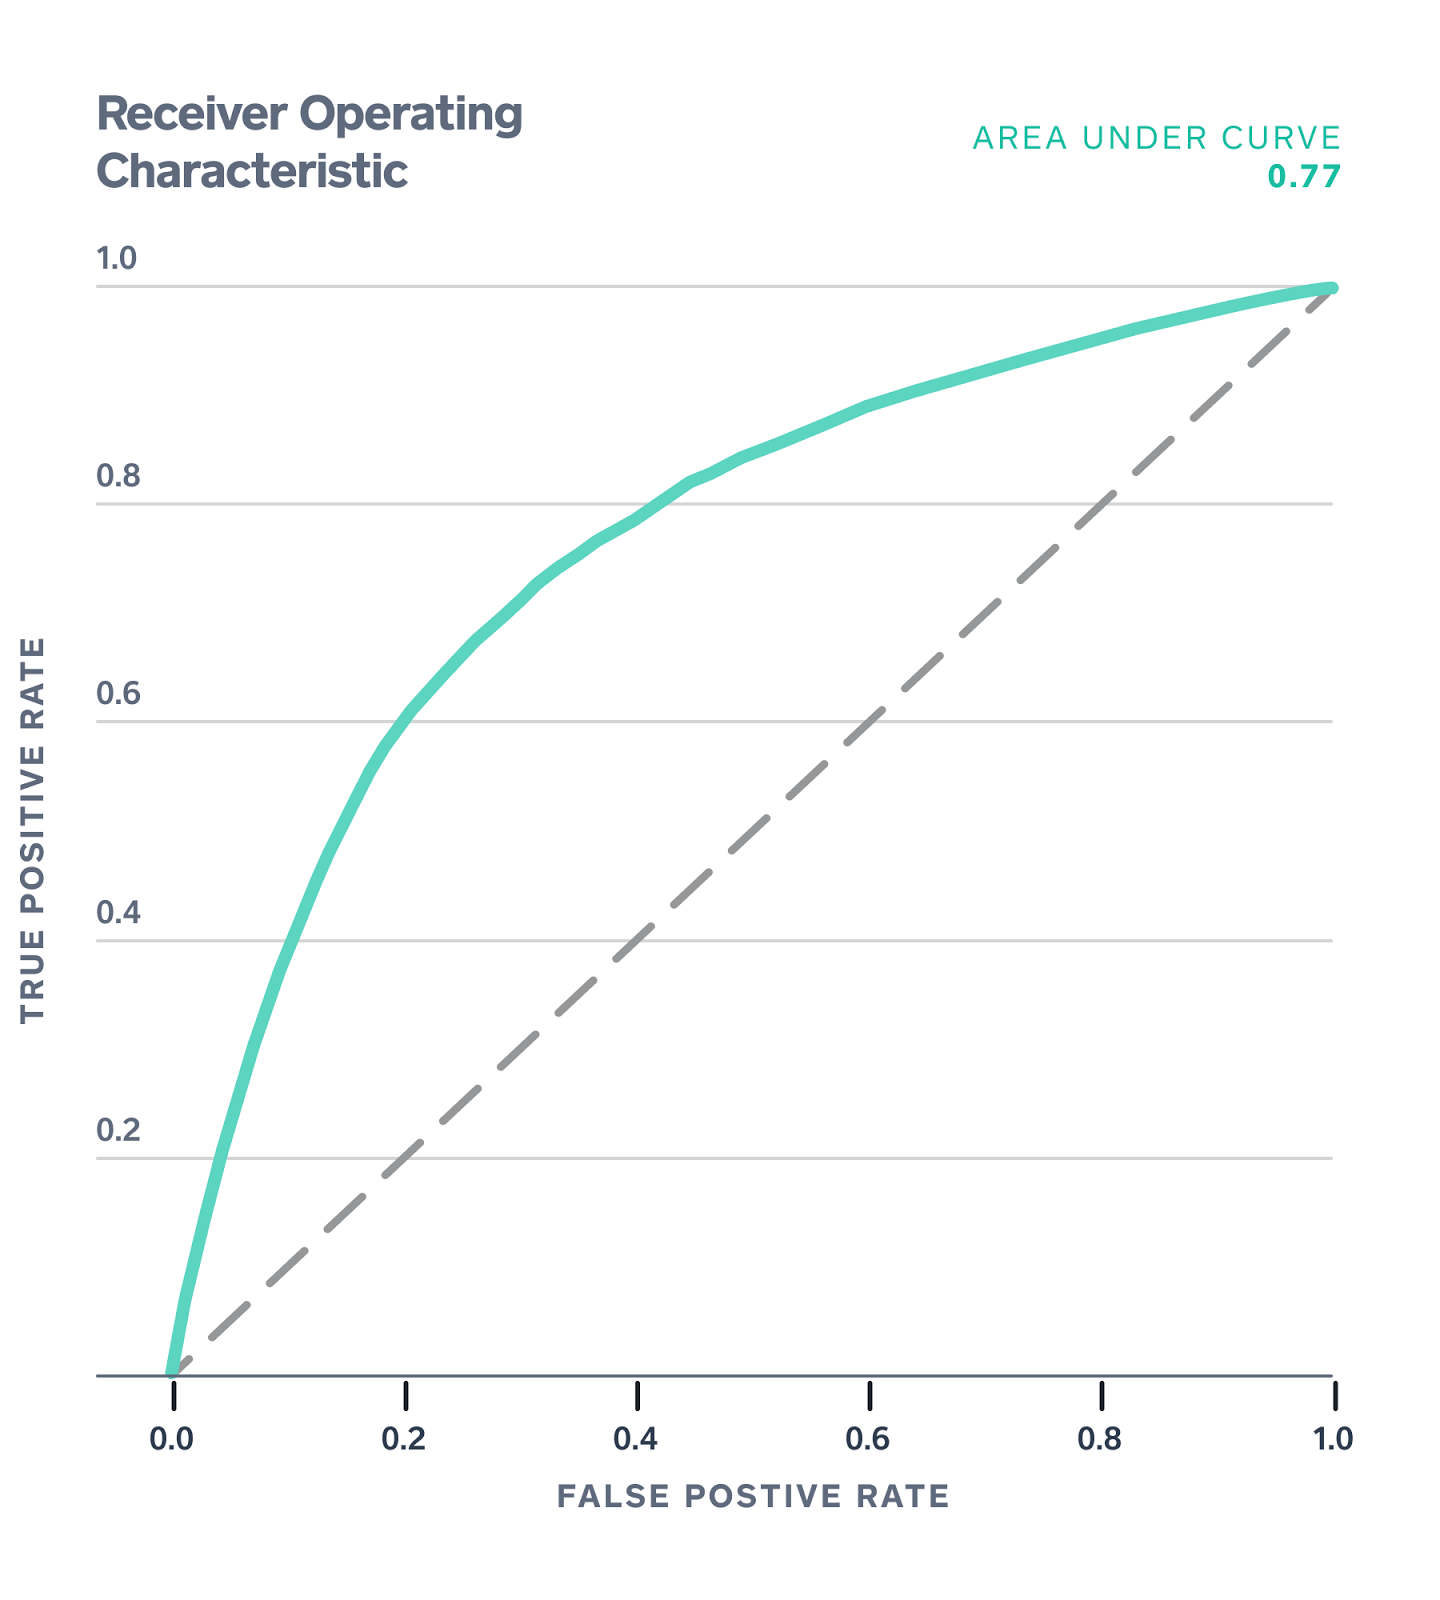 Figure 1. [ROC](https://en.wikipedia.org/wiki/Receiver_operating_characteristic) curve for Model Performance